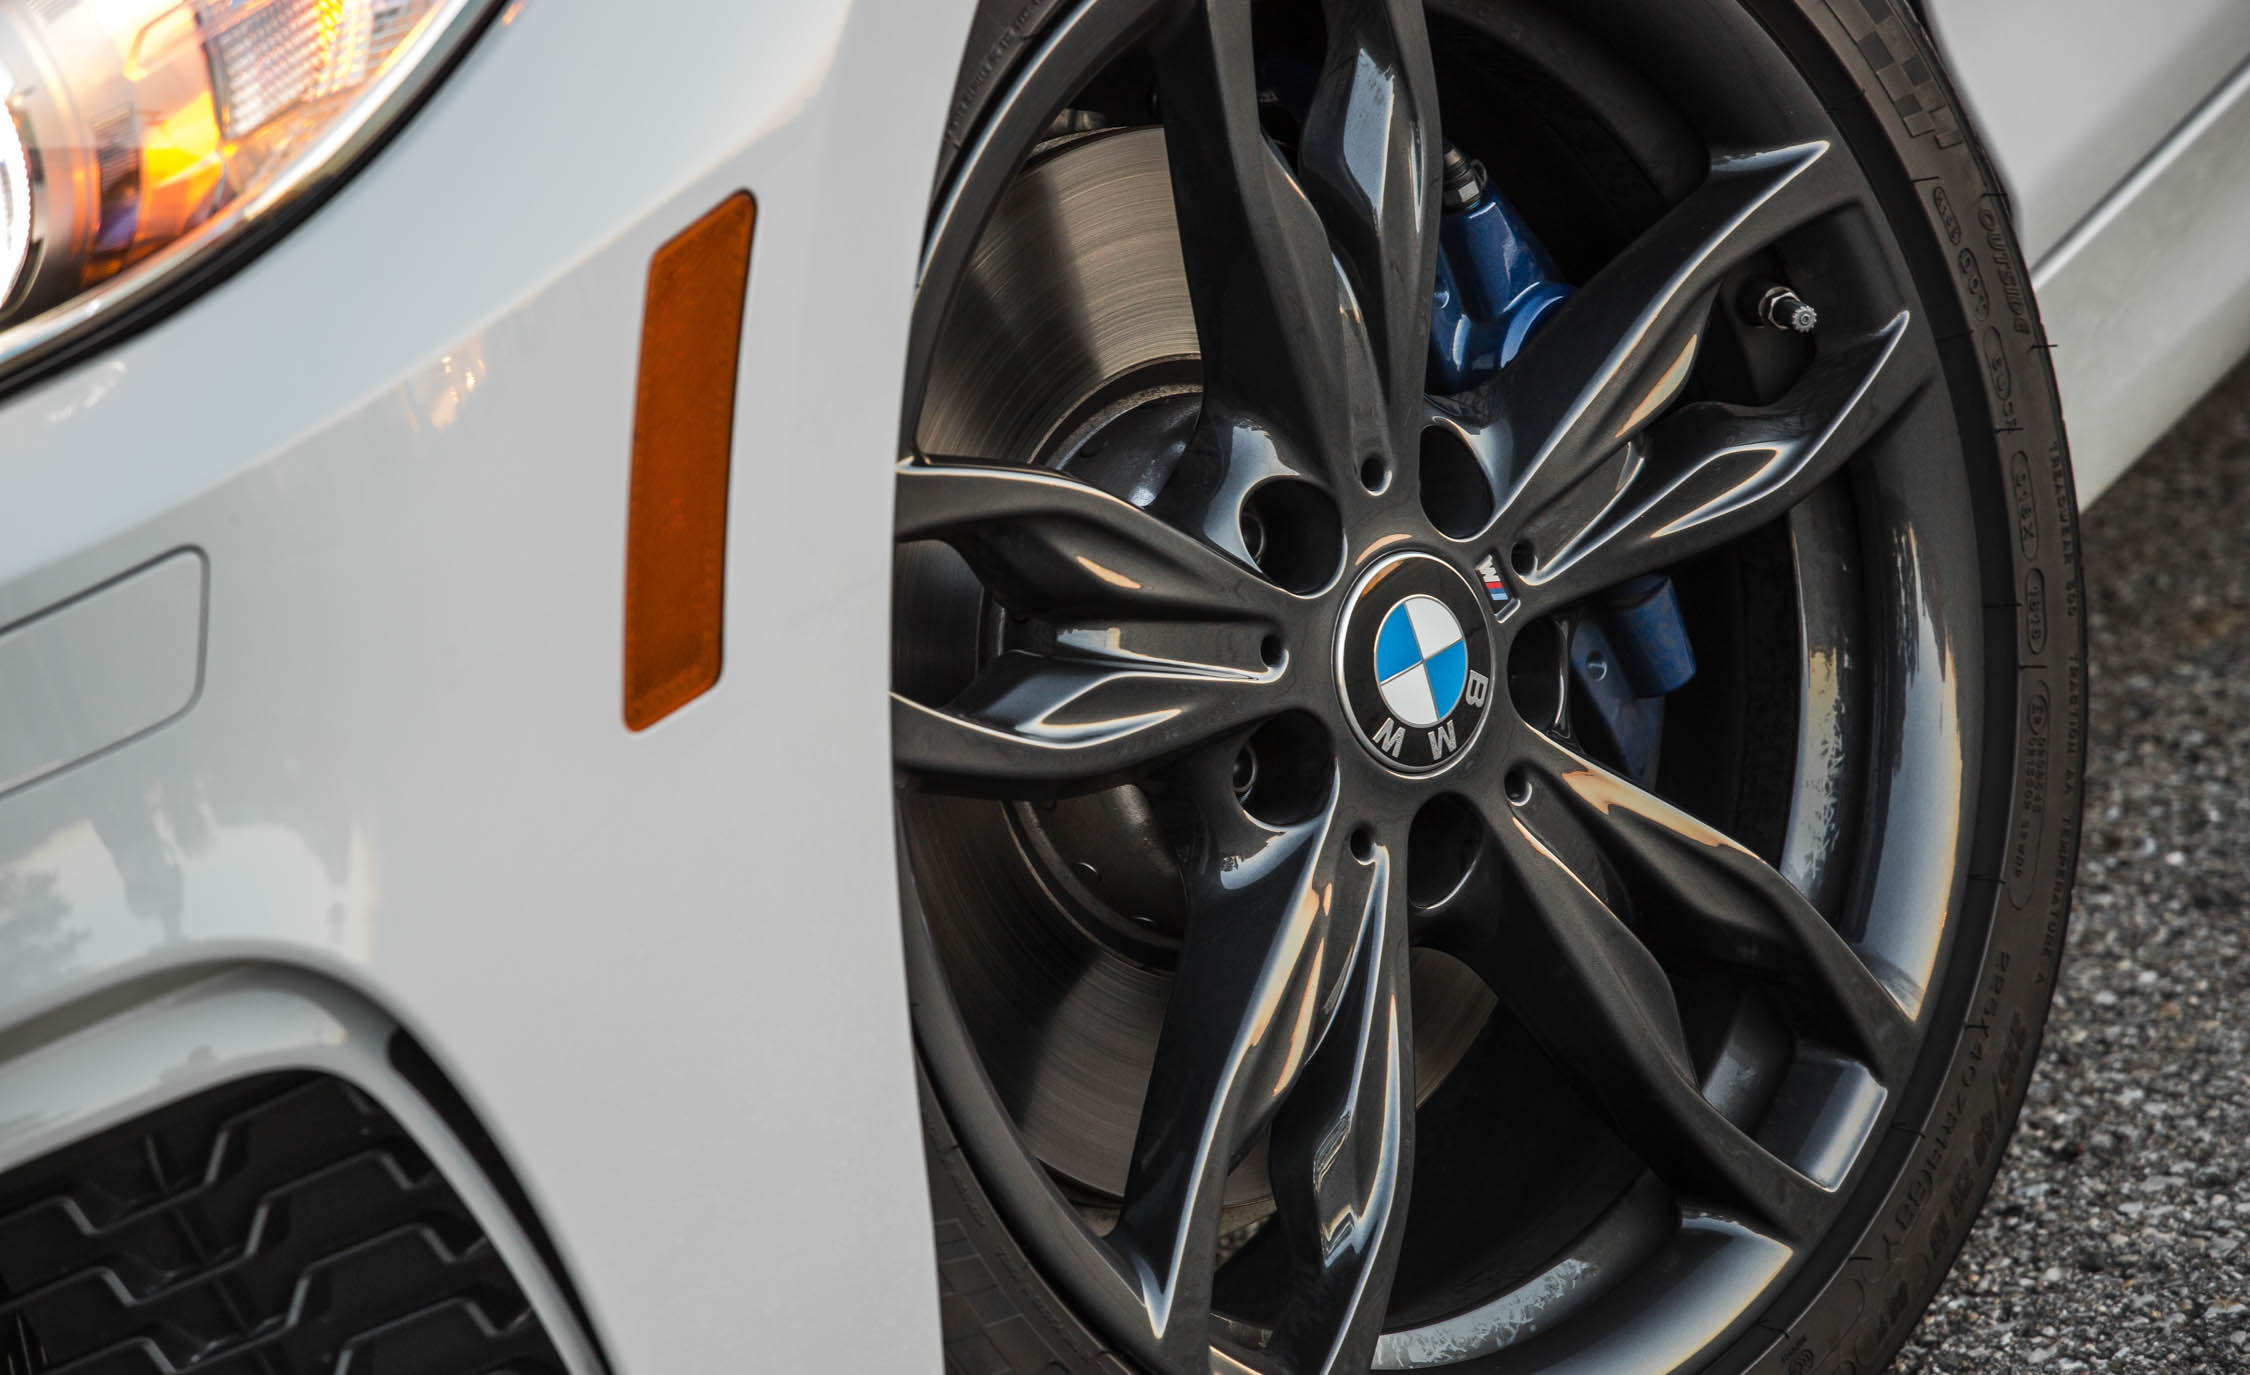 2017 BMW M240i Coupe Automatic Exterior View Wheel (Photo 19 of 36)